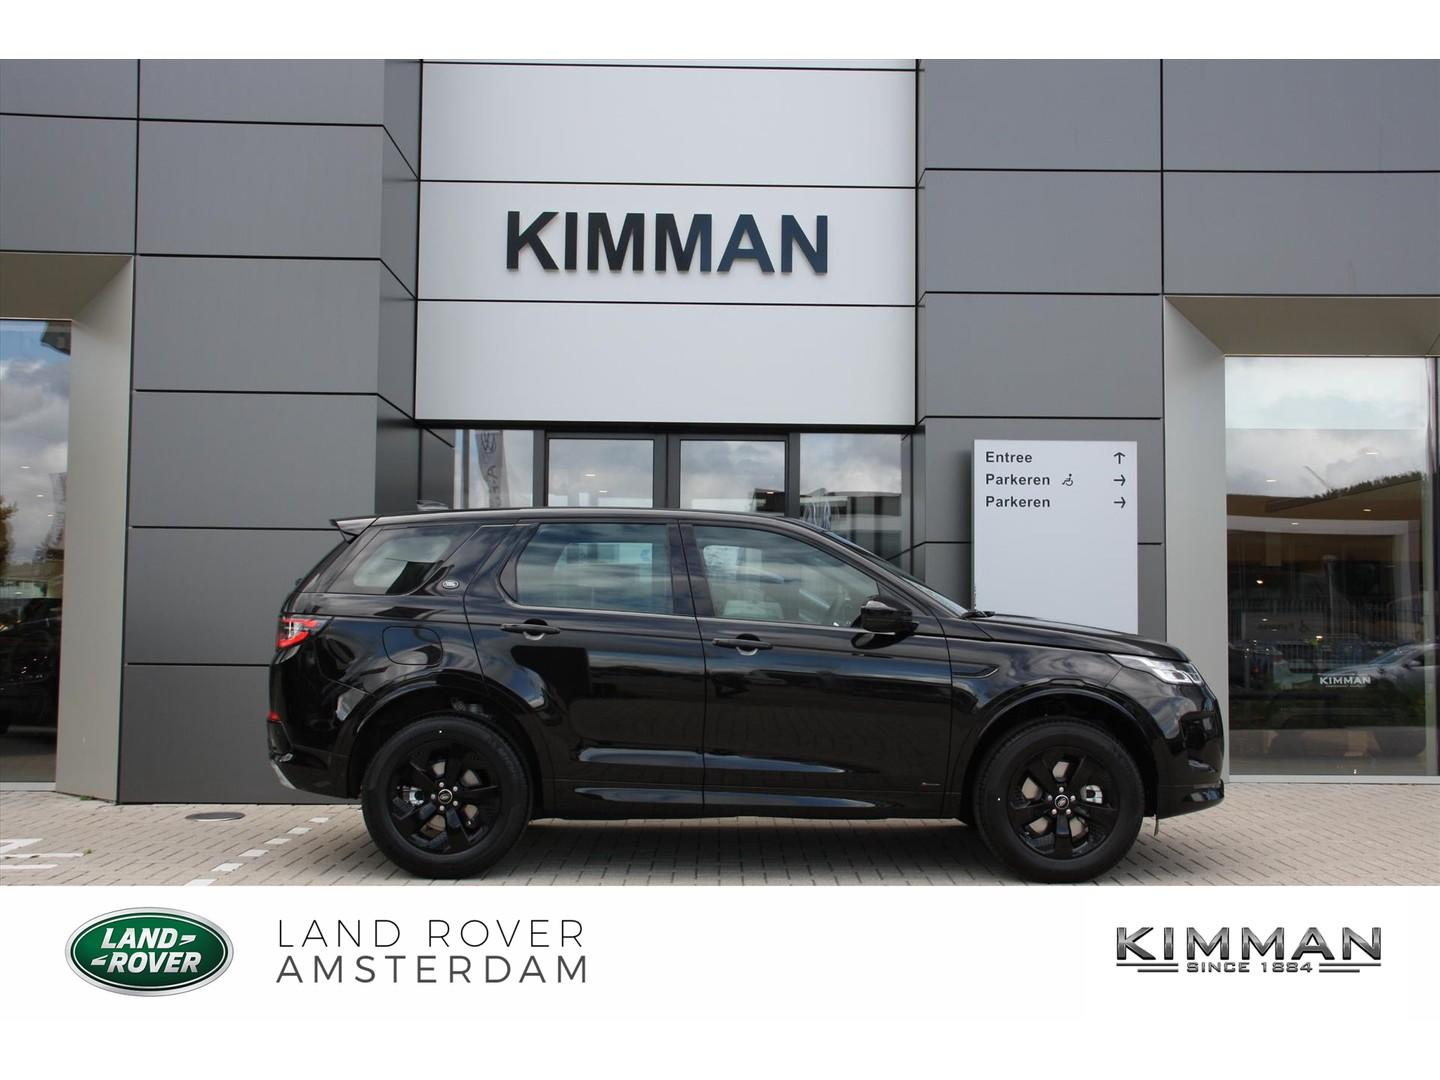 Land rover Discovery sport P200 200 pk r-dynamic launch edition awd